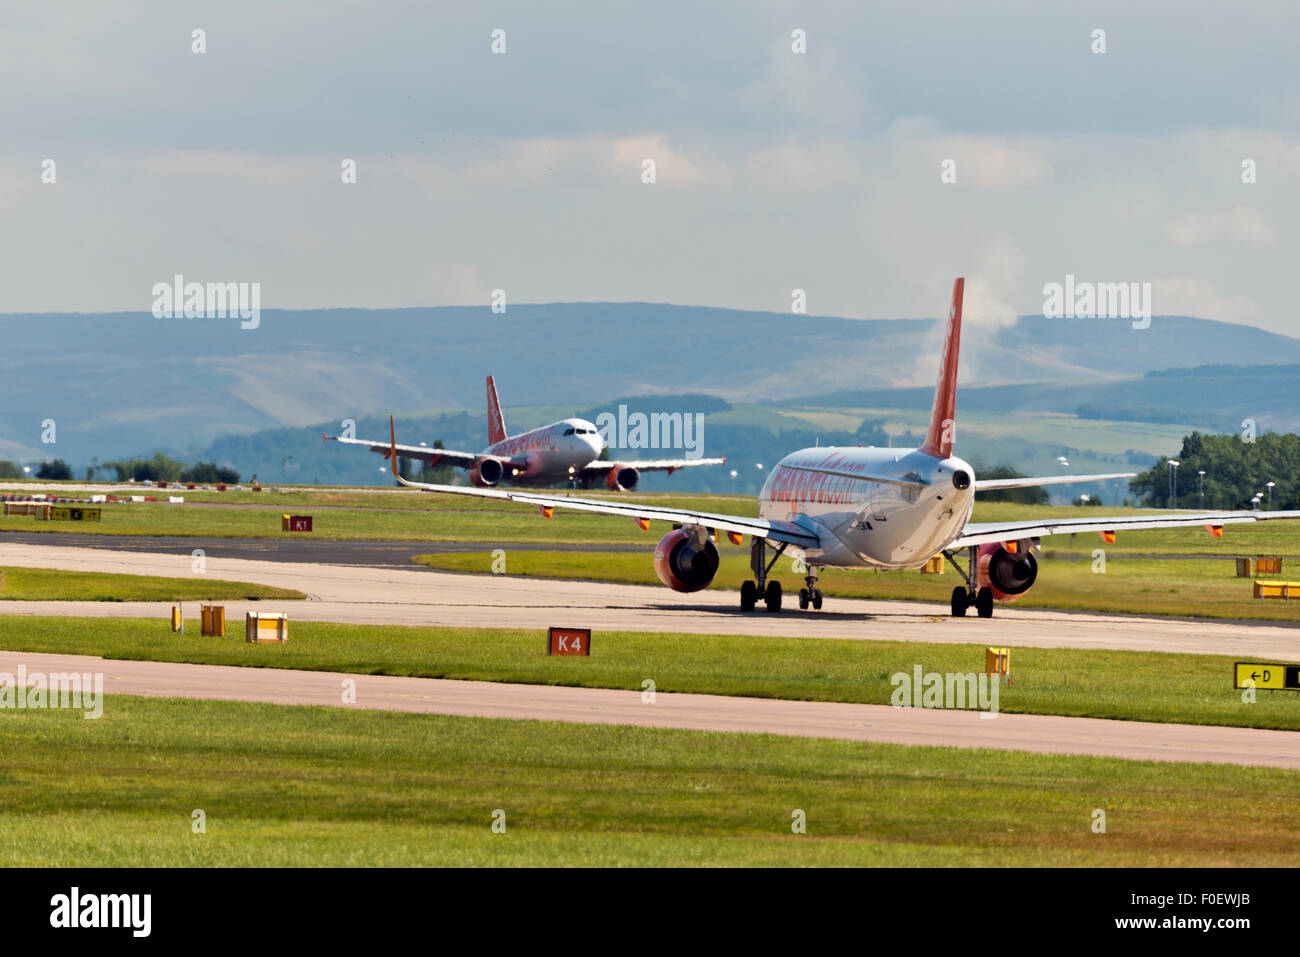 easyJet Airbus A320-200 Manchester Airport england uk arrivals departures - Stock Image